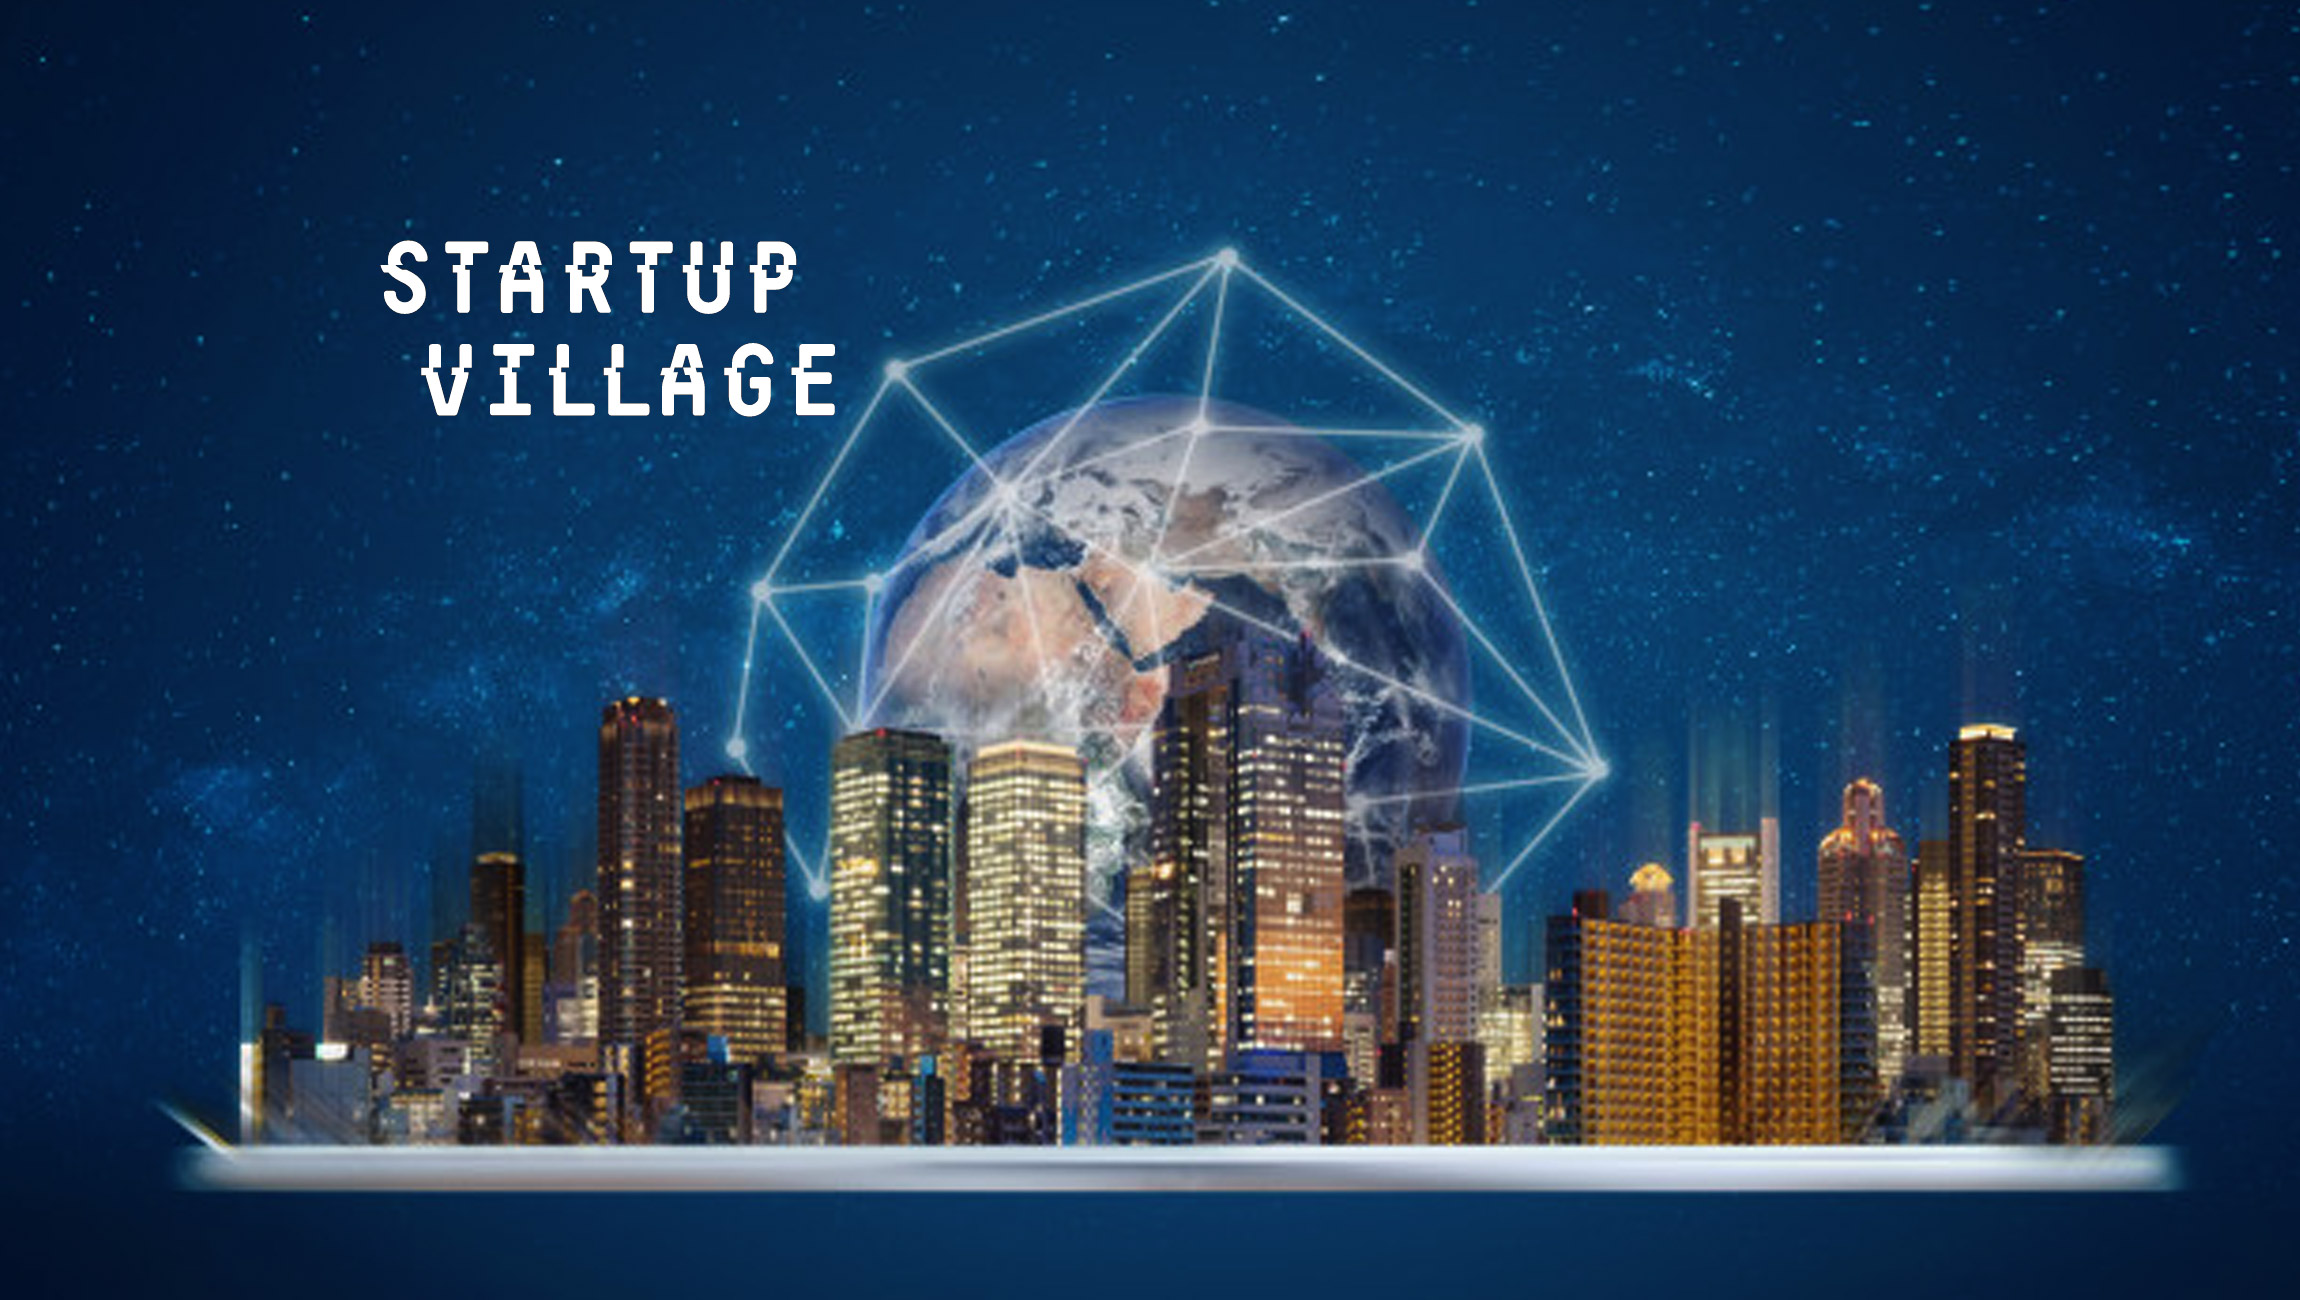 """Startup as a Masterpiece"": Skolkovo Foundation to Hold Startup Village Livestream '20, the Largest Free Virtual International Tech Conference of the Year"